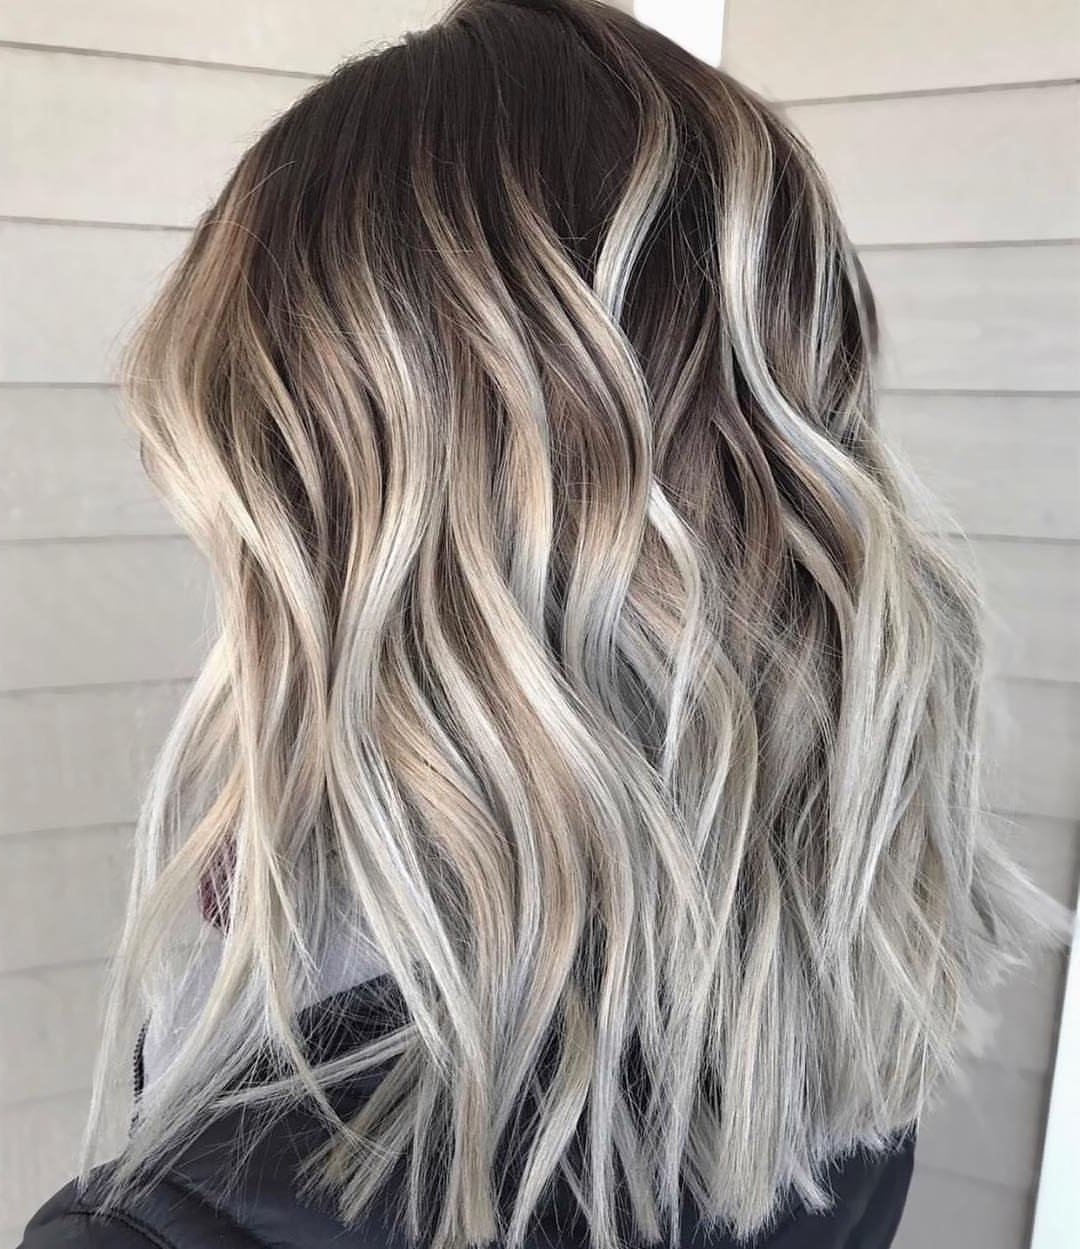 50 Hottest Ombre Hair Color Ideas For 2018 – Ombre Hairstyles For 2018 Blonde Ombre Waves Hairstyles (View 16 of 20)